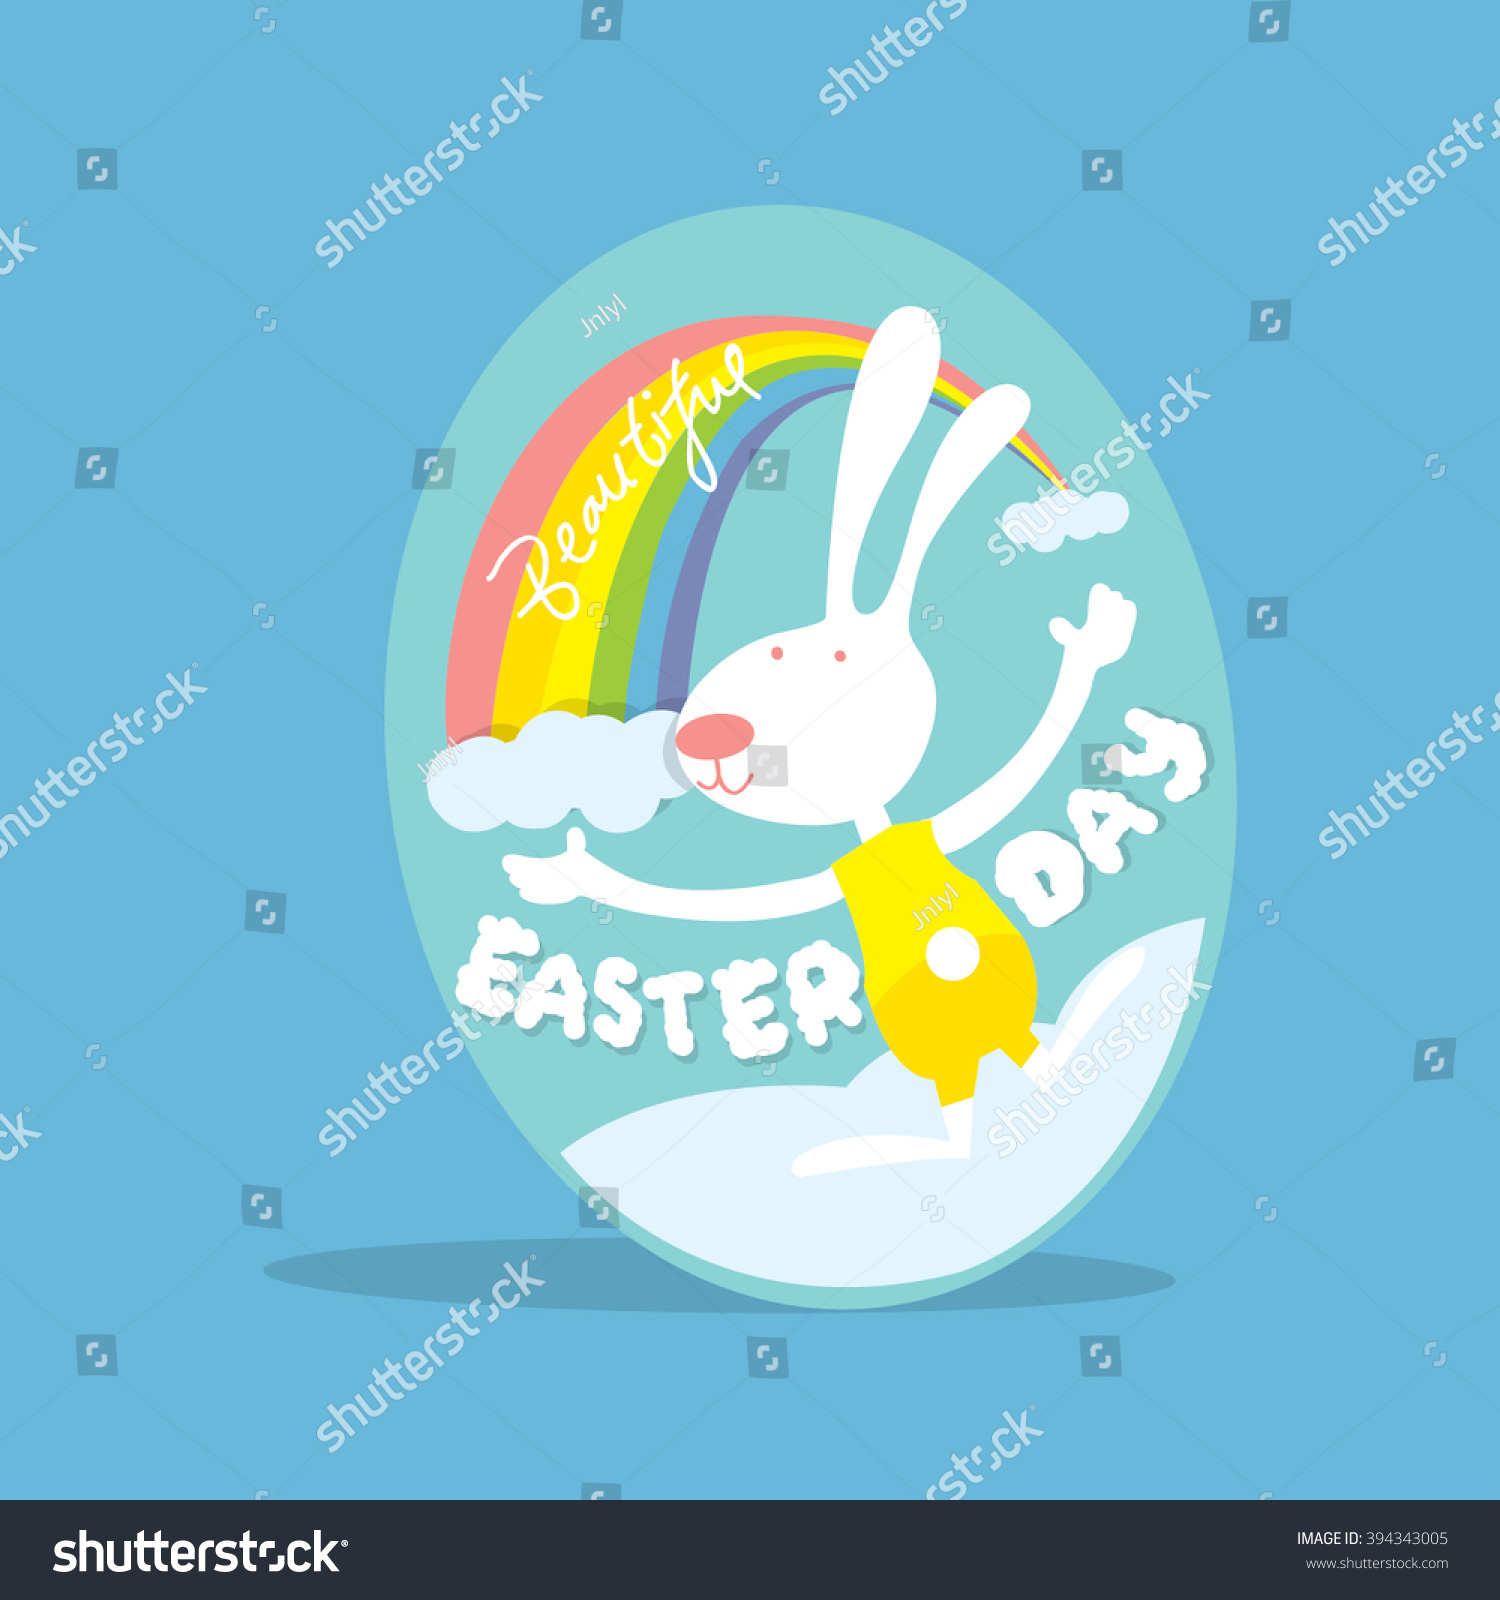 Happy Easter Day Greetings Card Easter Stock Vector 394343005